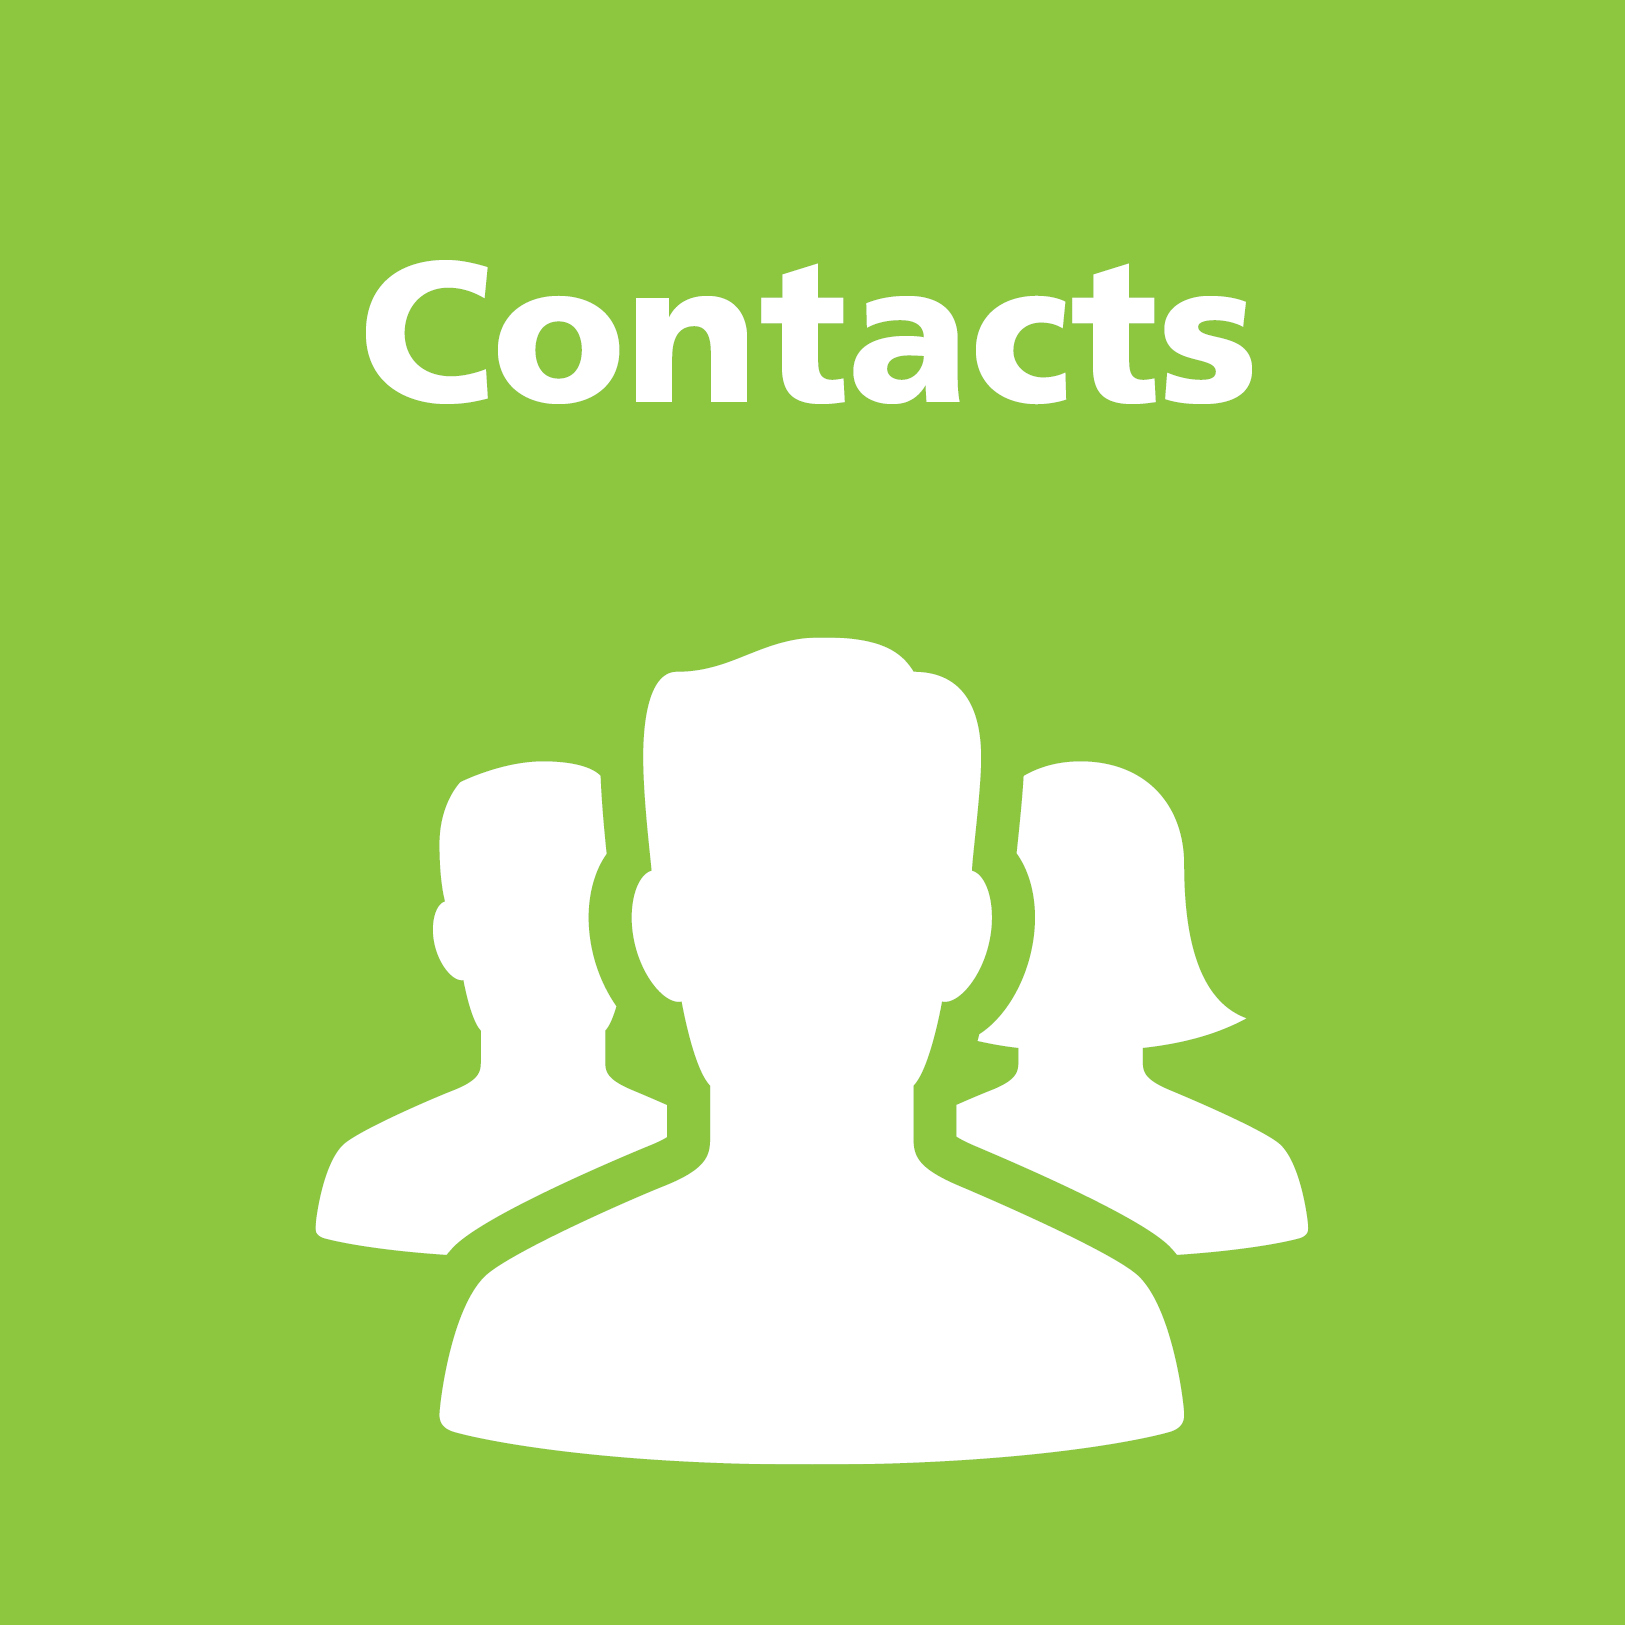 Contacts link image